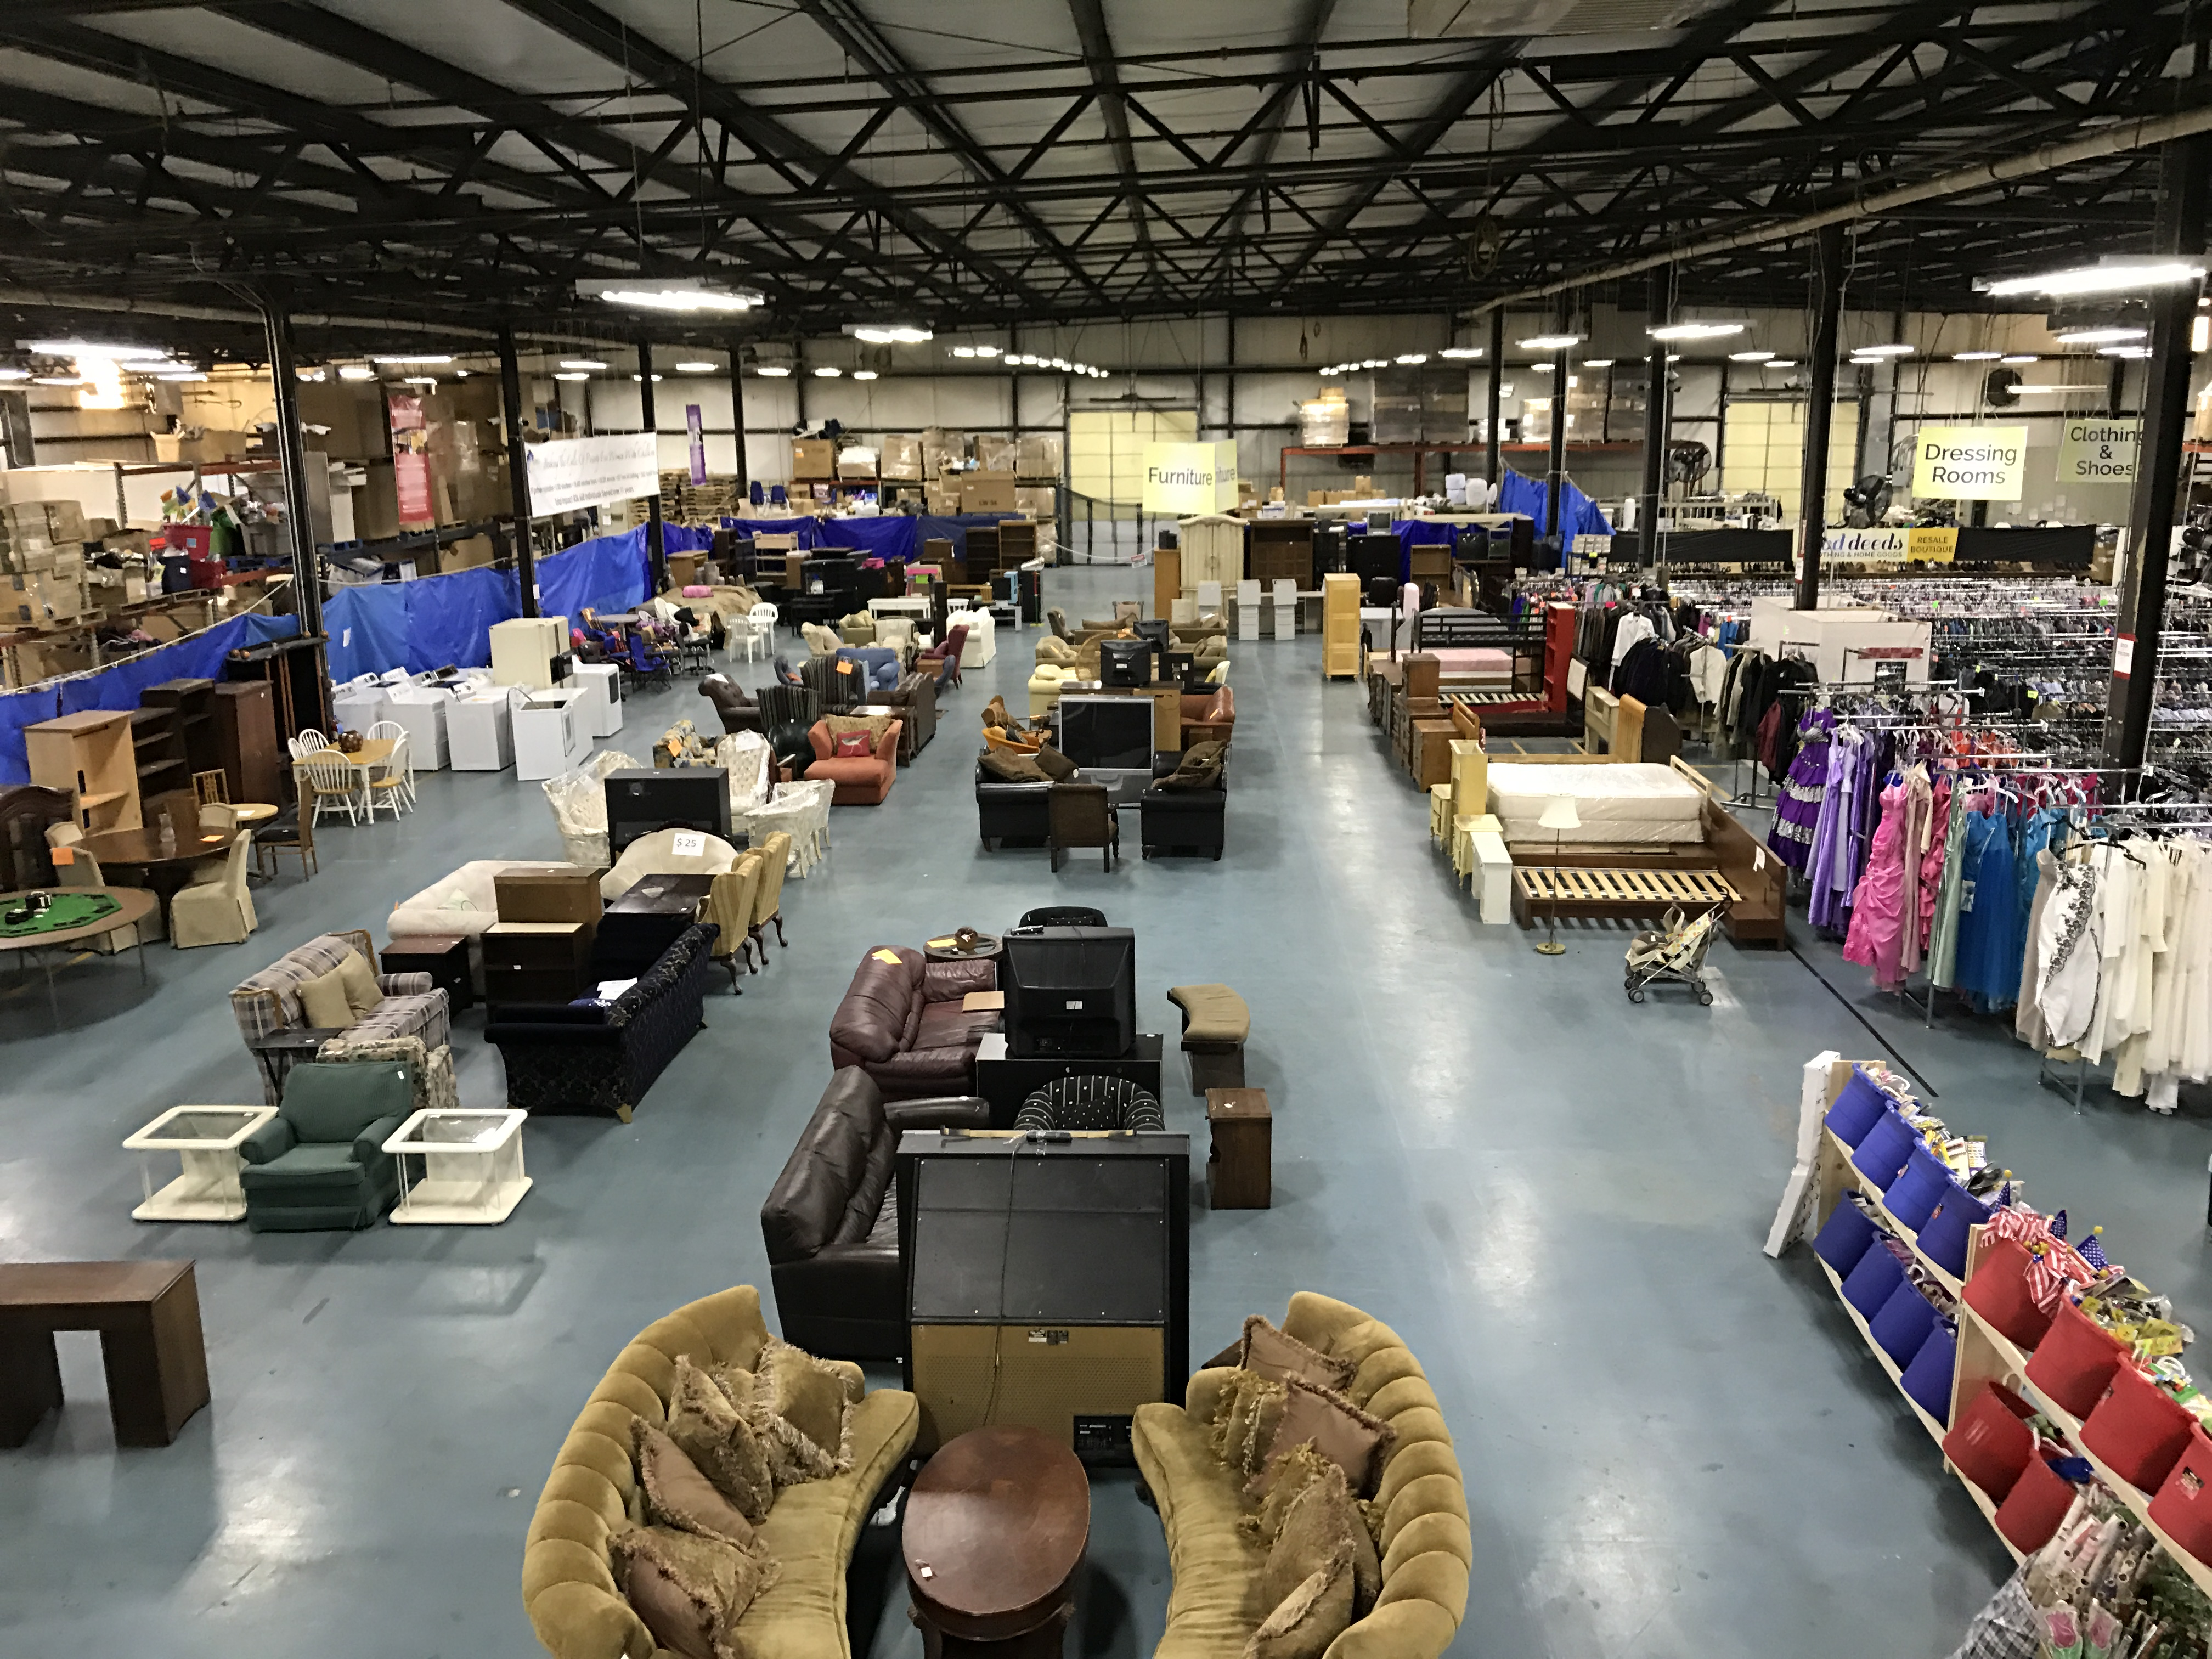 Overhead shot of Zaman International's warehouse showing furniture and boxes.